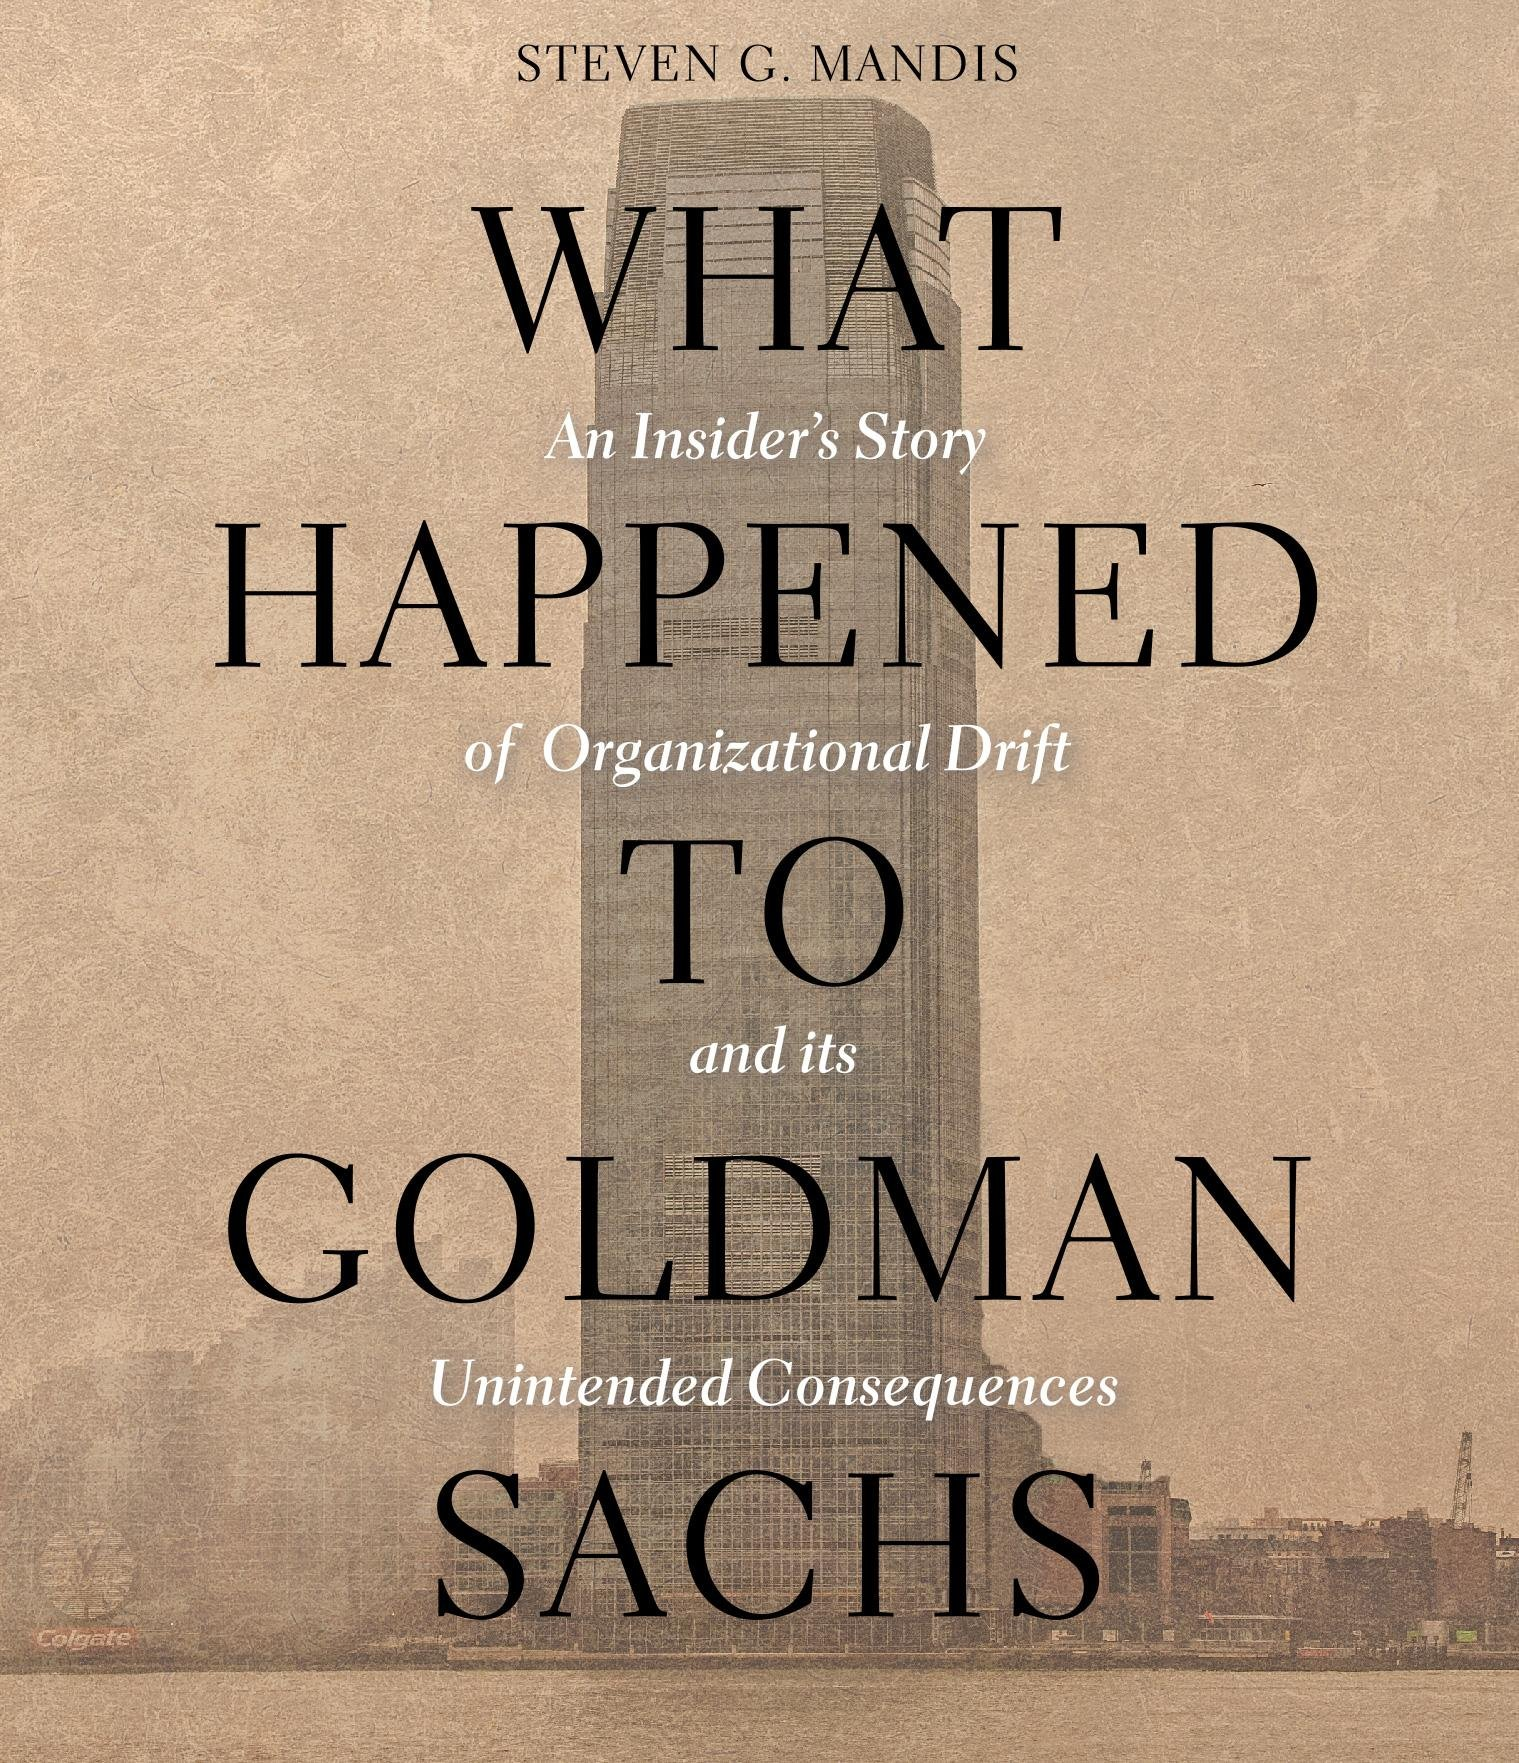 Amazon.com: What Happened to Goldman Sachs: An Insiders Story of  Organizational Drift and Its Unintended Consequences (9781622314461):  Steven G. Mandis, ...